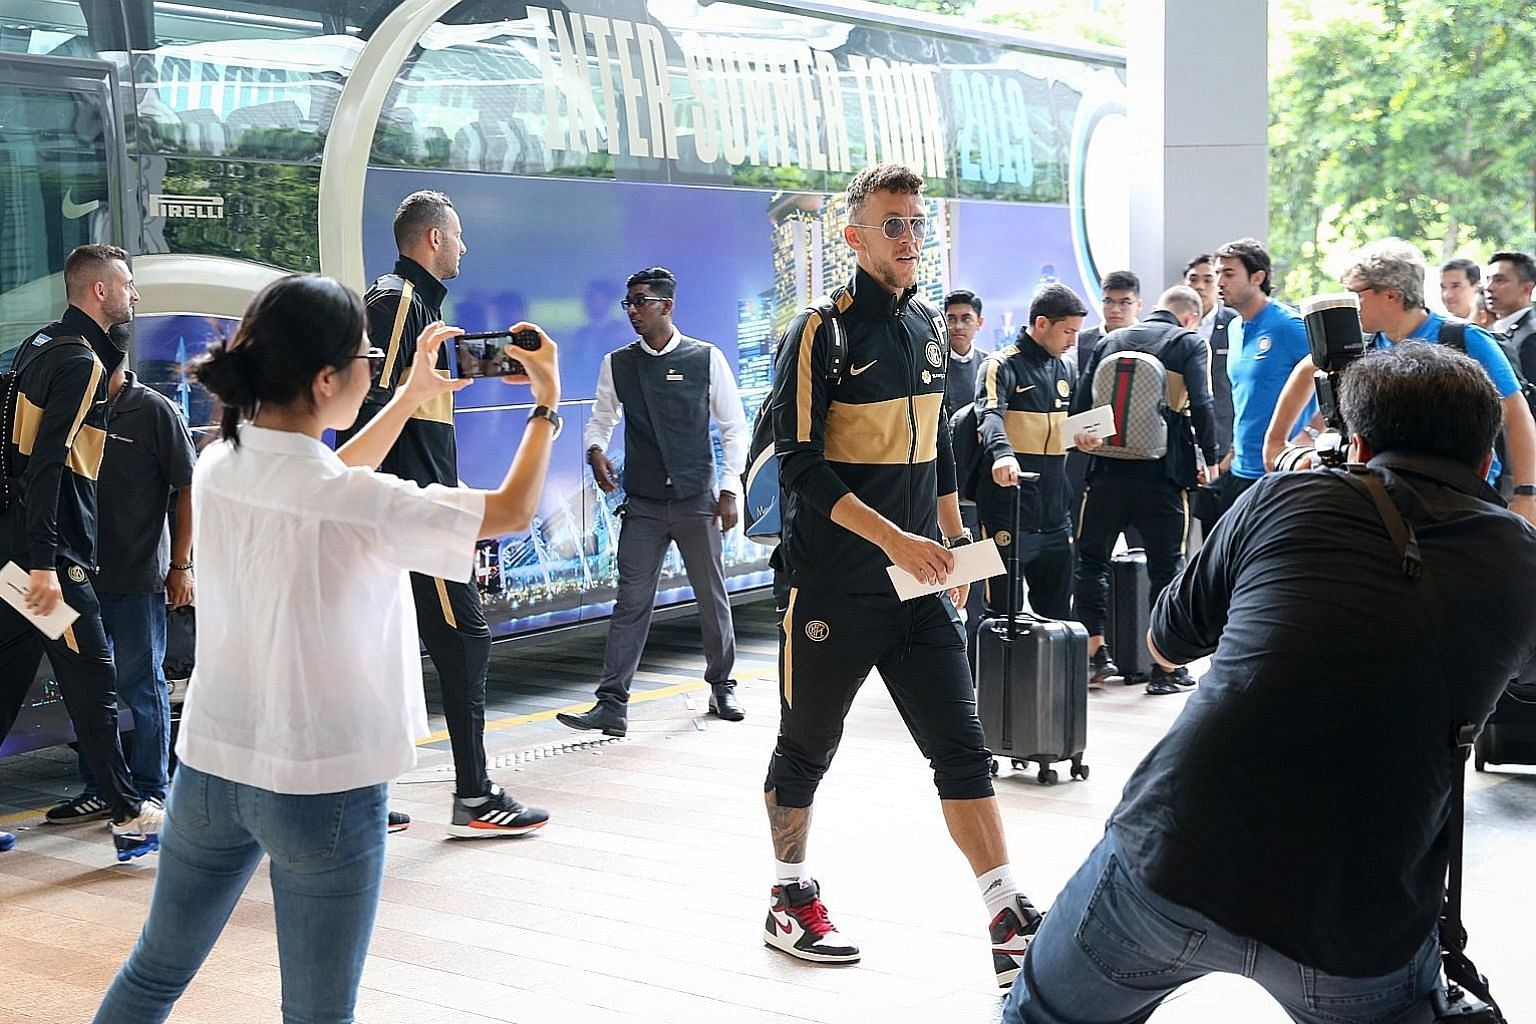 Left: Inter Milan's Ivan Perisic arriving at the hotel yesterday with his teammates. The Italian club will be playing against Manchester United on Saturday, while Juventus will meet Tottenham on Sunday in the International Champions Cup at the Nation